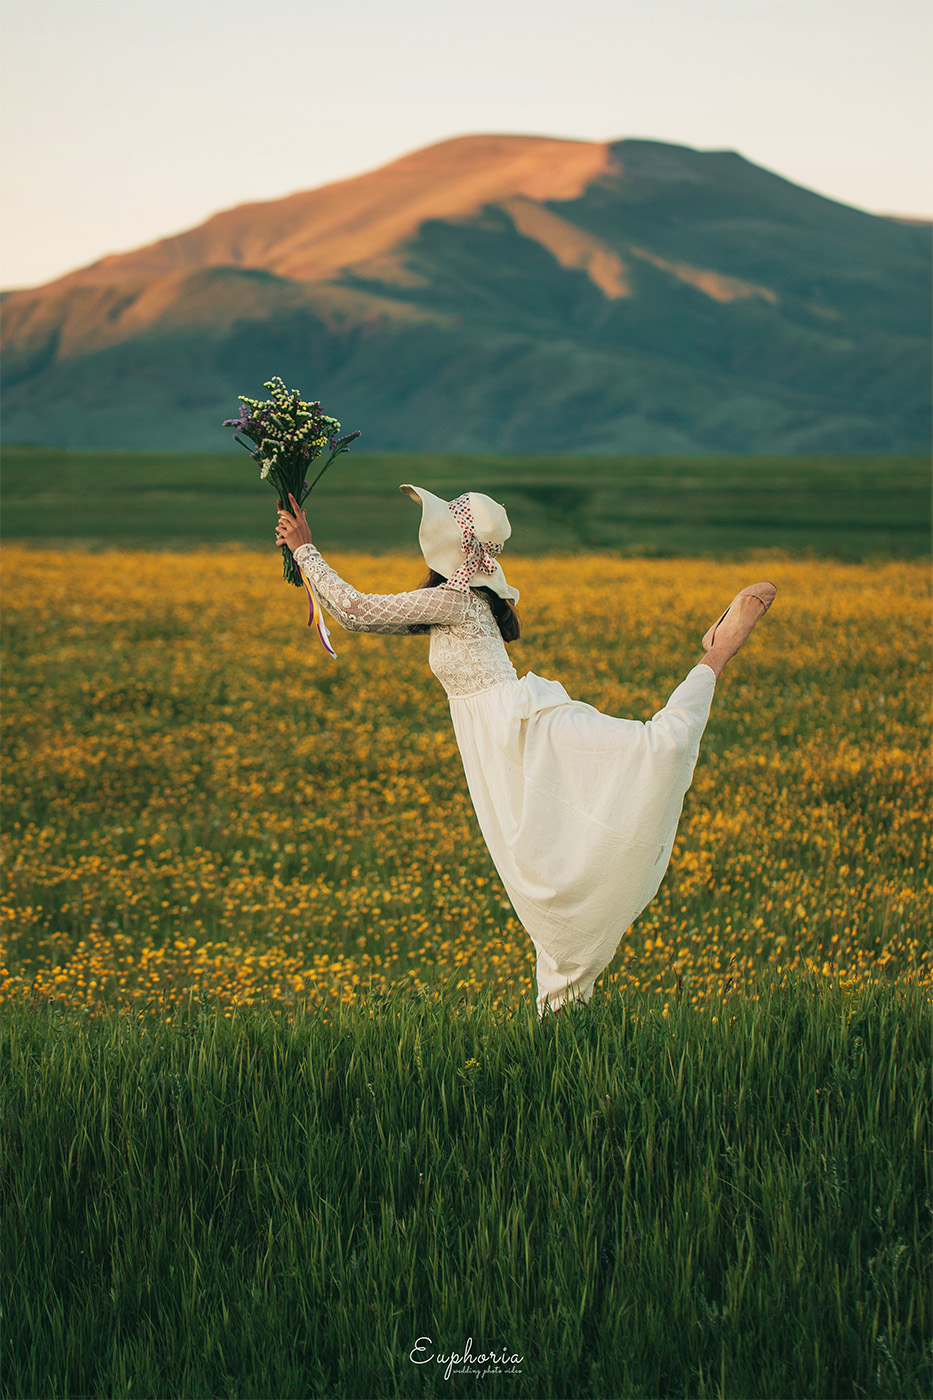 //euphoriawedding.com/wp-content/uploads/2018/12/Yellow-photoshoot-10.jpg